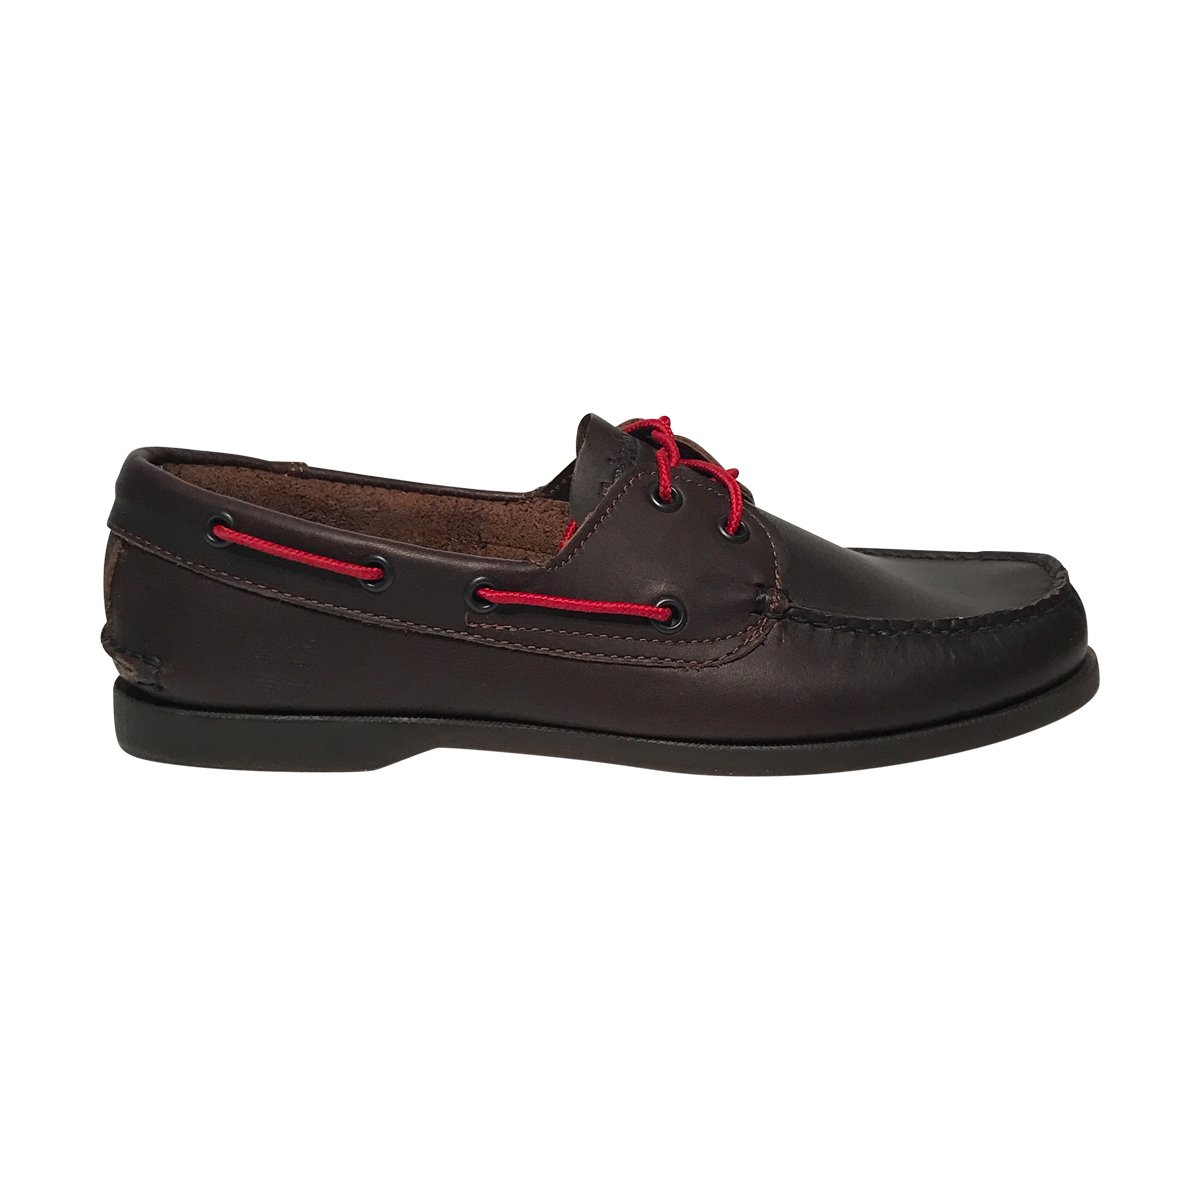 Timberland Mens Classic Two-Eye Boat Shoe (Boat Dark Brown-Red, 10.5)